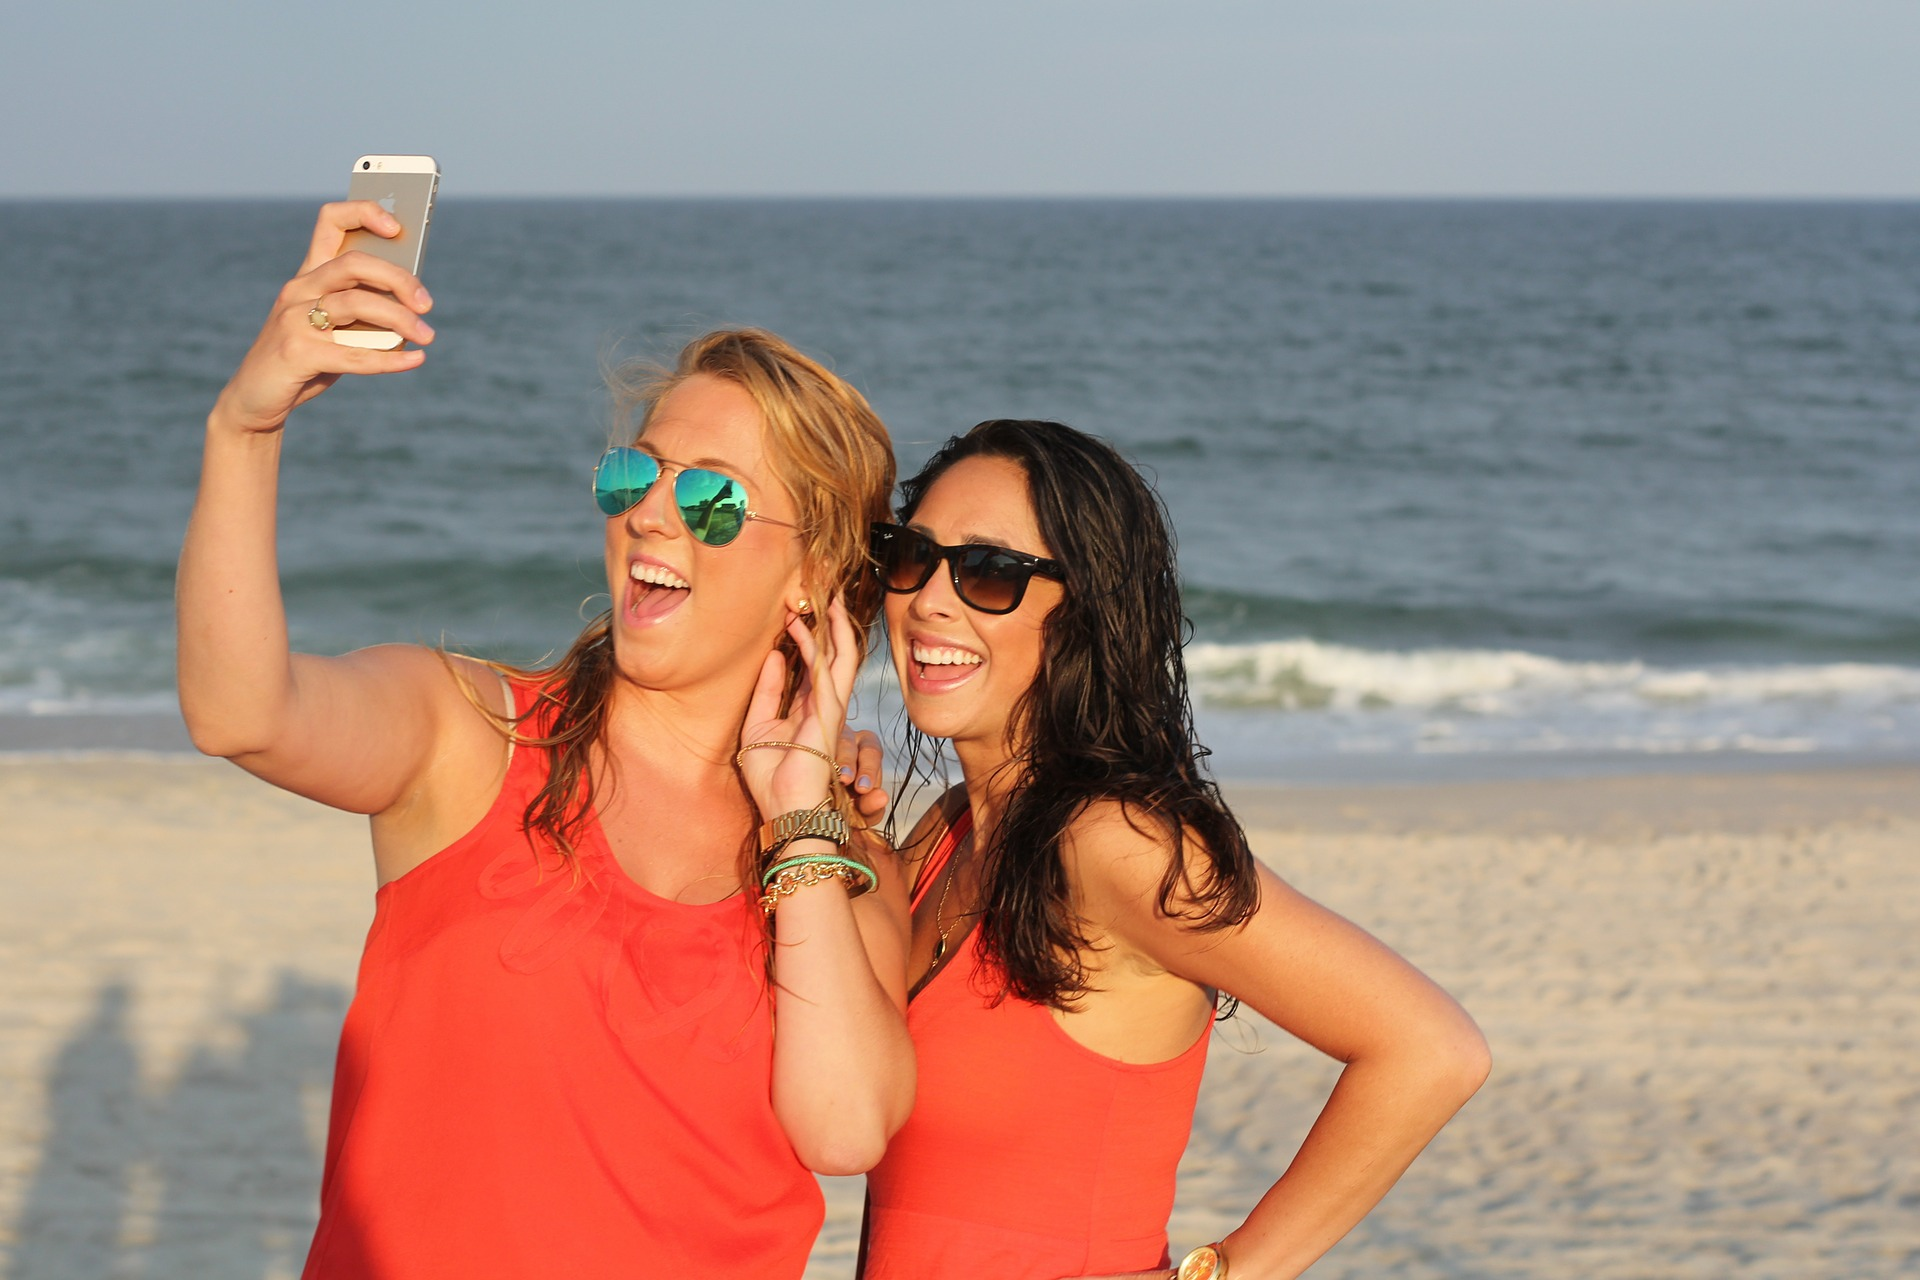 Girls on the beach taking pictures